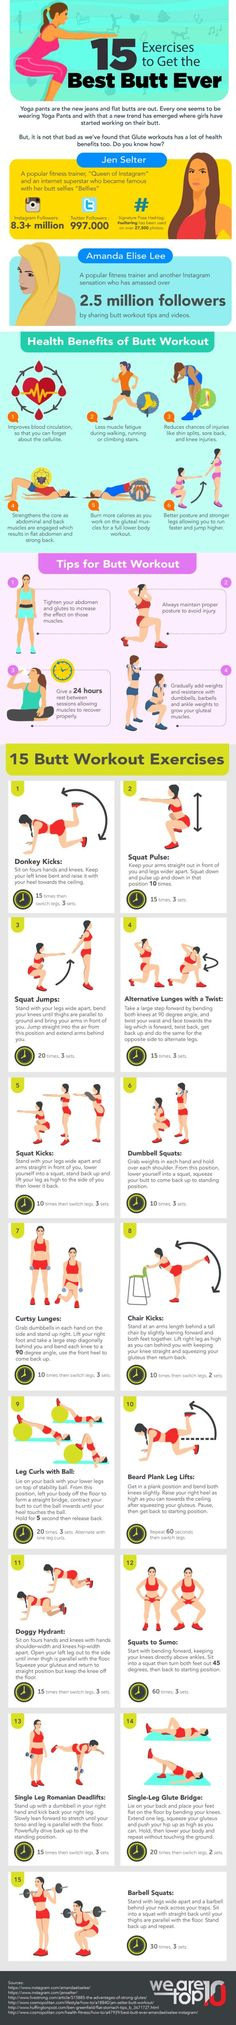 15-Exercises-to-get-Best-Butt-Ever1.jpg (740×6352)